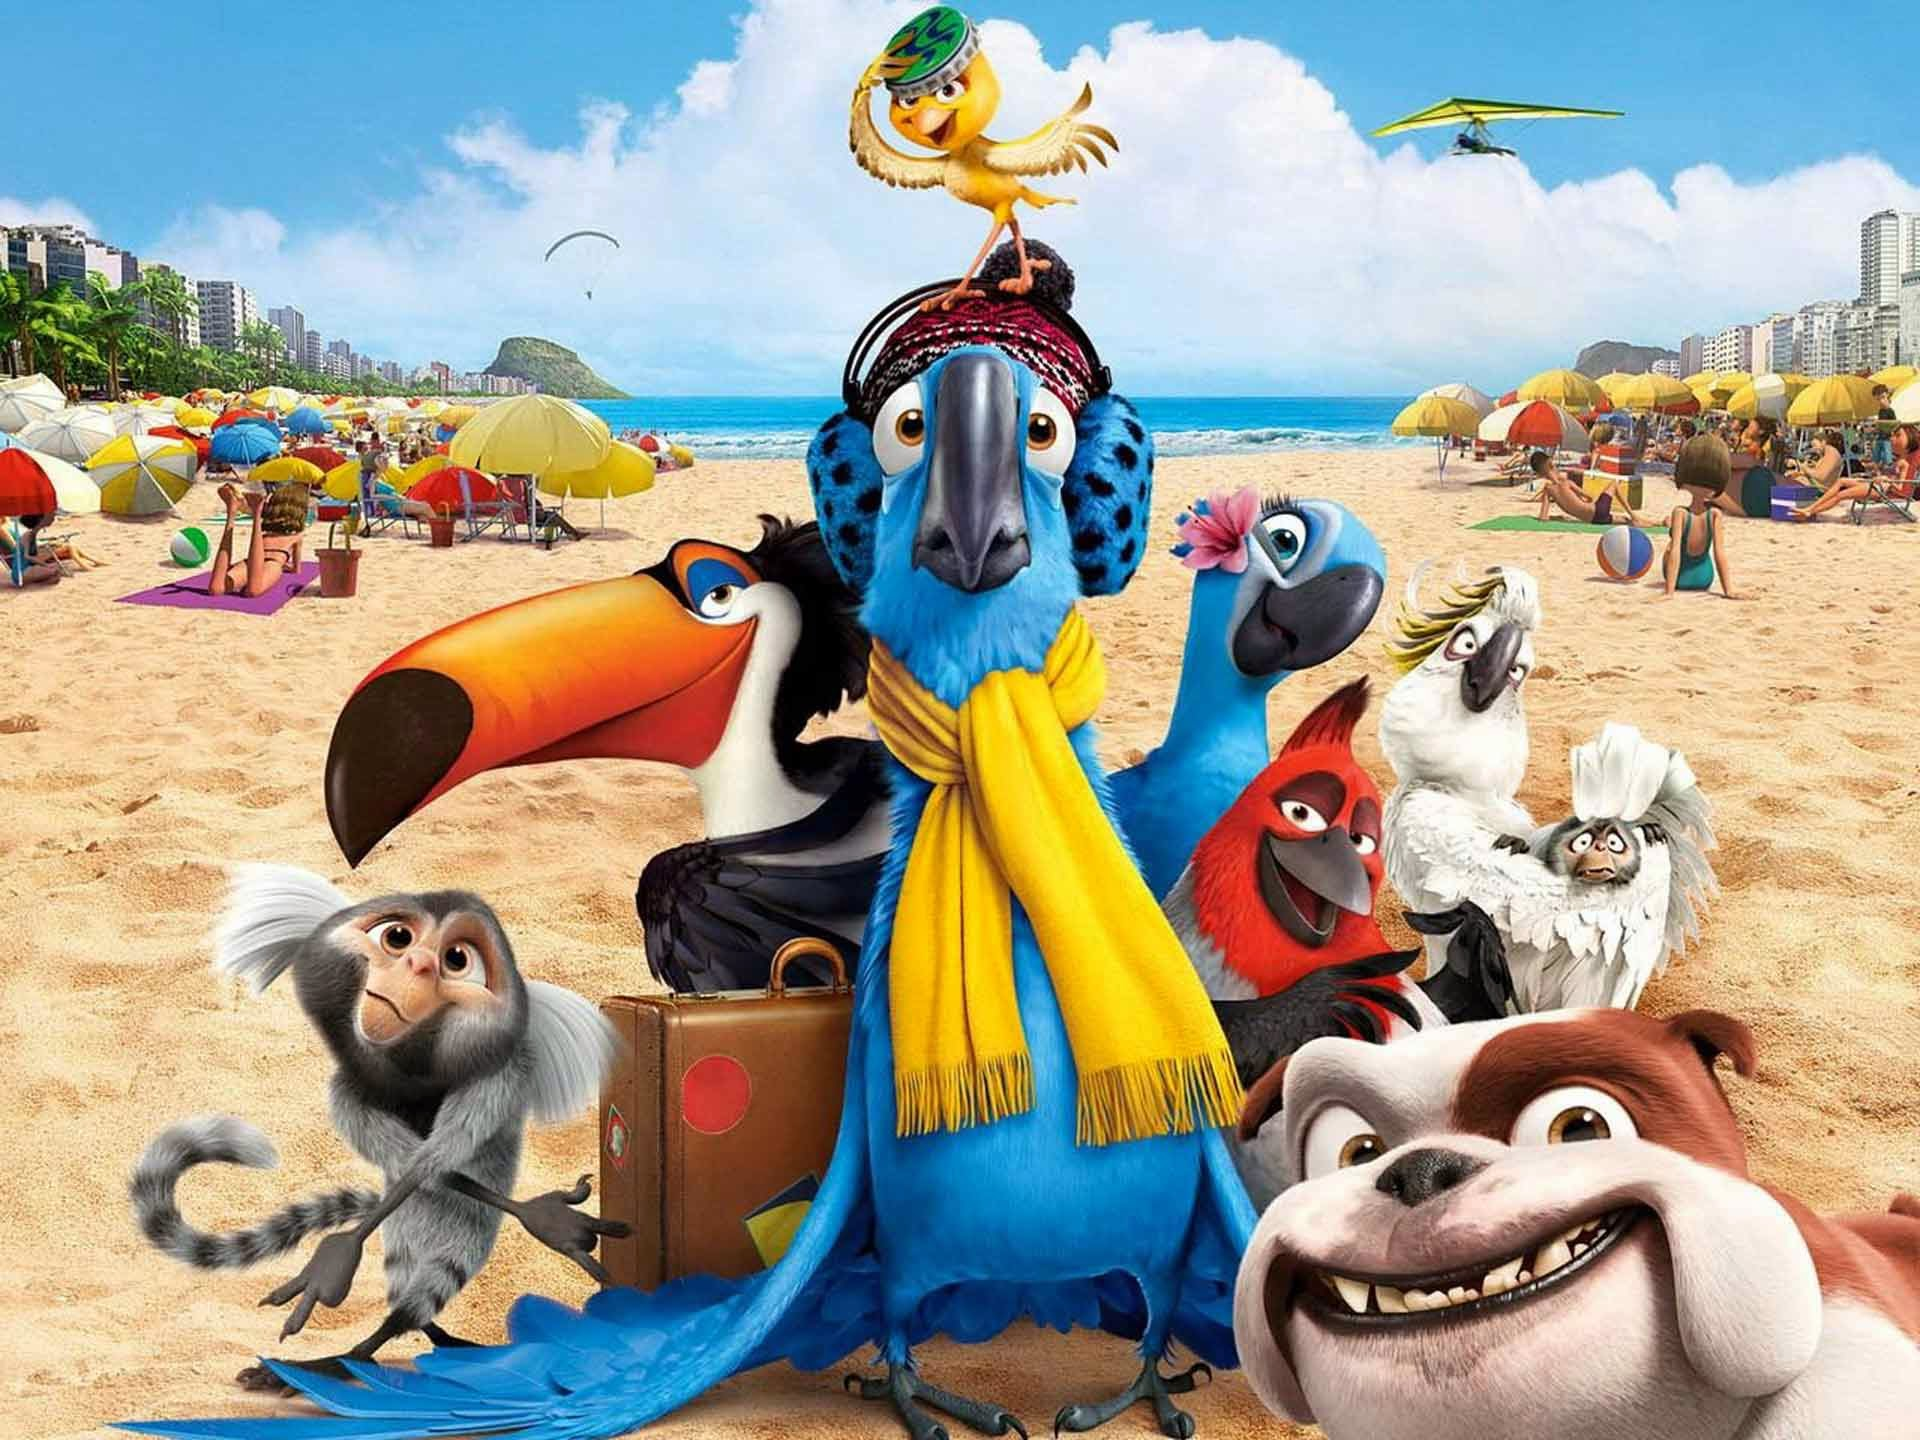 Rio 2 Funny Movie 2014 5k HD Wallpaper